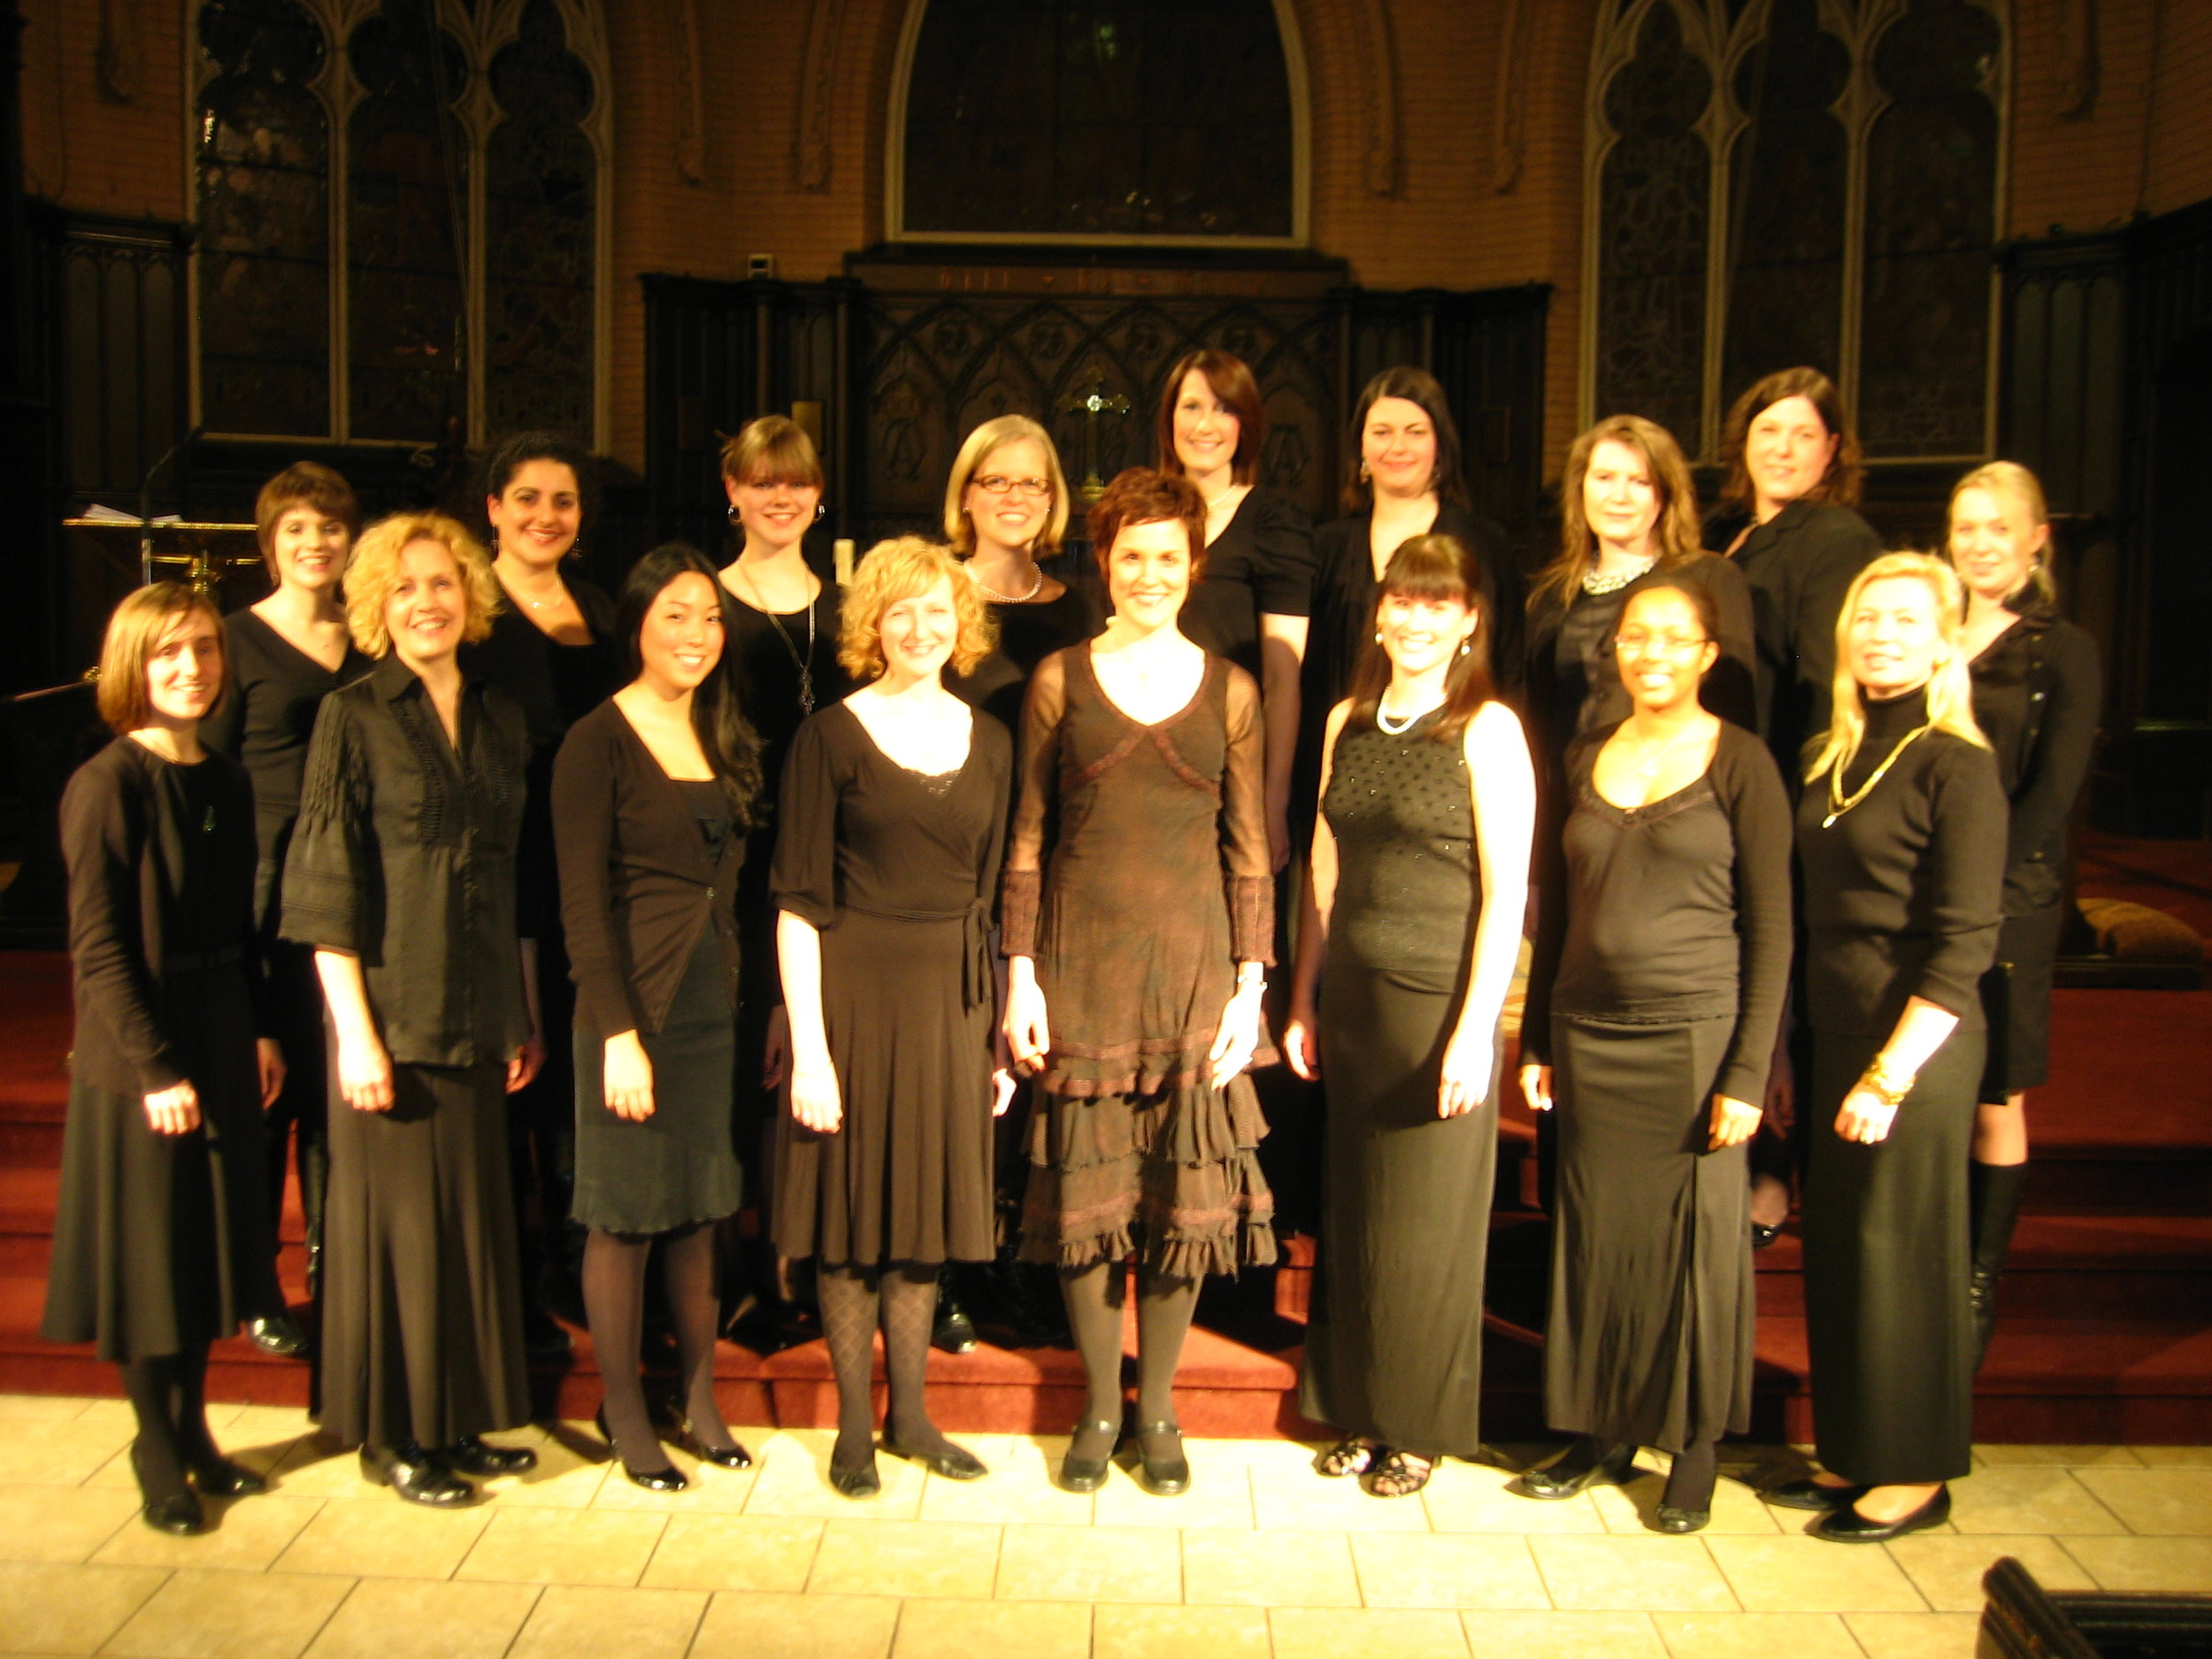 A picture of Cantala after one of our earliest 6 week choir projects. Picture taken December 2009. Pictured here is Nancy Dawe (Currently President of Board), Allison Lockett (Secretary of Board), and Rebecca Enkin (Recent on leave member) and Angela Nelson-Heesch (recent on leave member). All the others were short term members who have either moved away from Toronto and/or only sang once or twice with me. Many have continued to keep in touch via facebook as their lives take a different musical turn. (Who would have guessed that Marnie Sohn would take baby pictures of my first born 4 years later or that many of our children (that were yet to be born) would play together and share a nanny one day......) Needless to say, there is a lot of personal history in this photograph. The singers of Cantala have touched my life in many different ways.